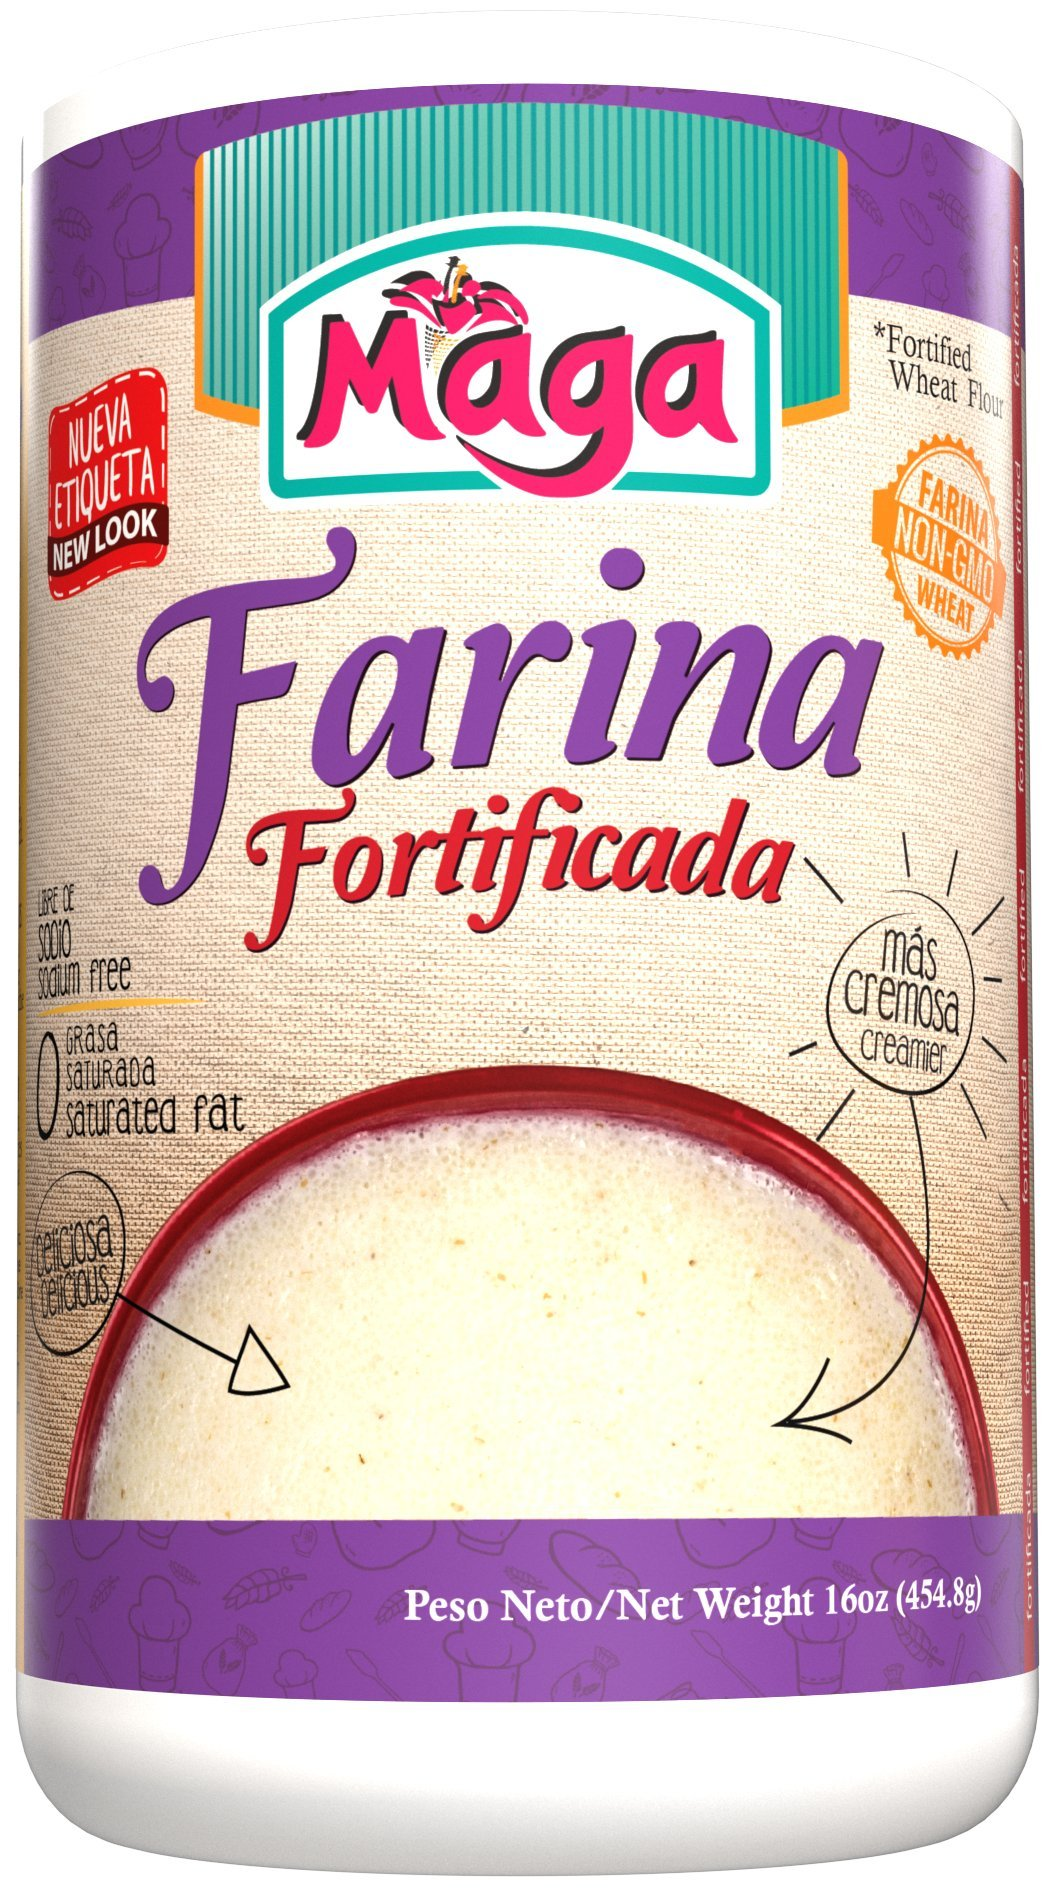 FARINA Fortificada (Fortified Cream of Wheat) by Maga Foods Puerto Rico - 12 Oz (Count of 2) by Maga Foods